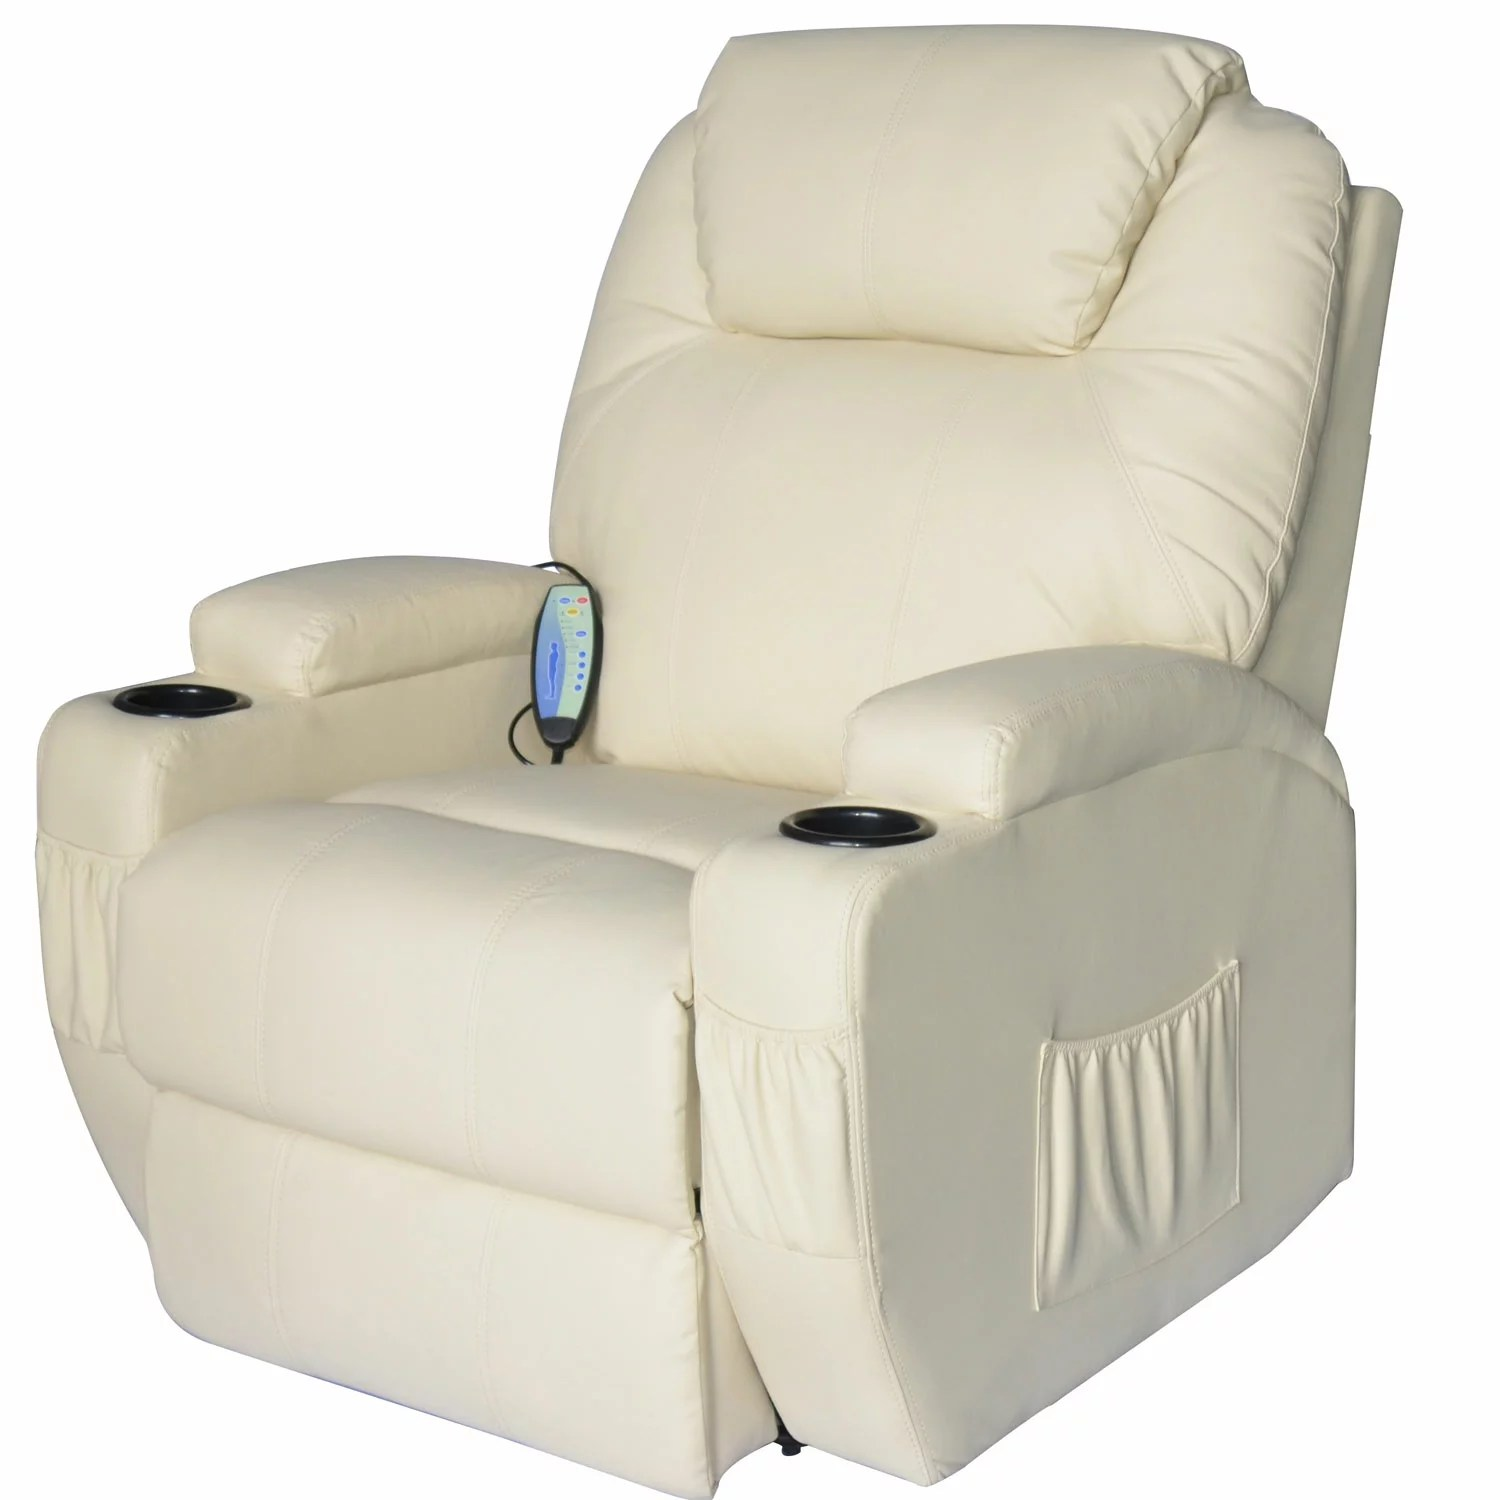 heated chair cover for recliner global upholstery 69a7019 aosom homcom massage pu leather 360 degree swivel with remote cream 0